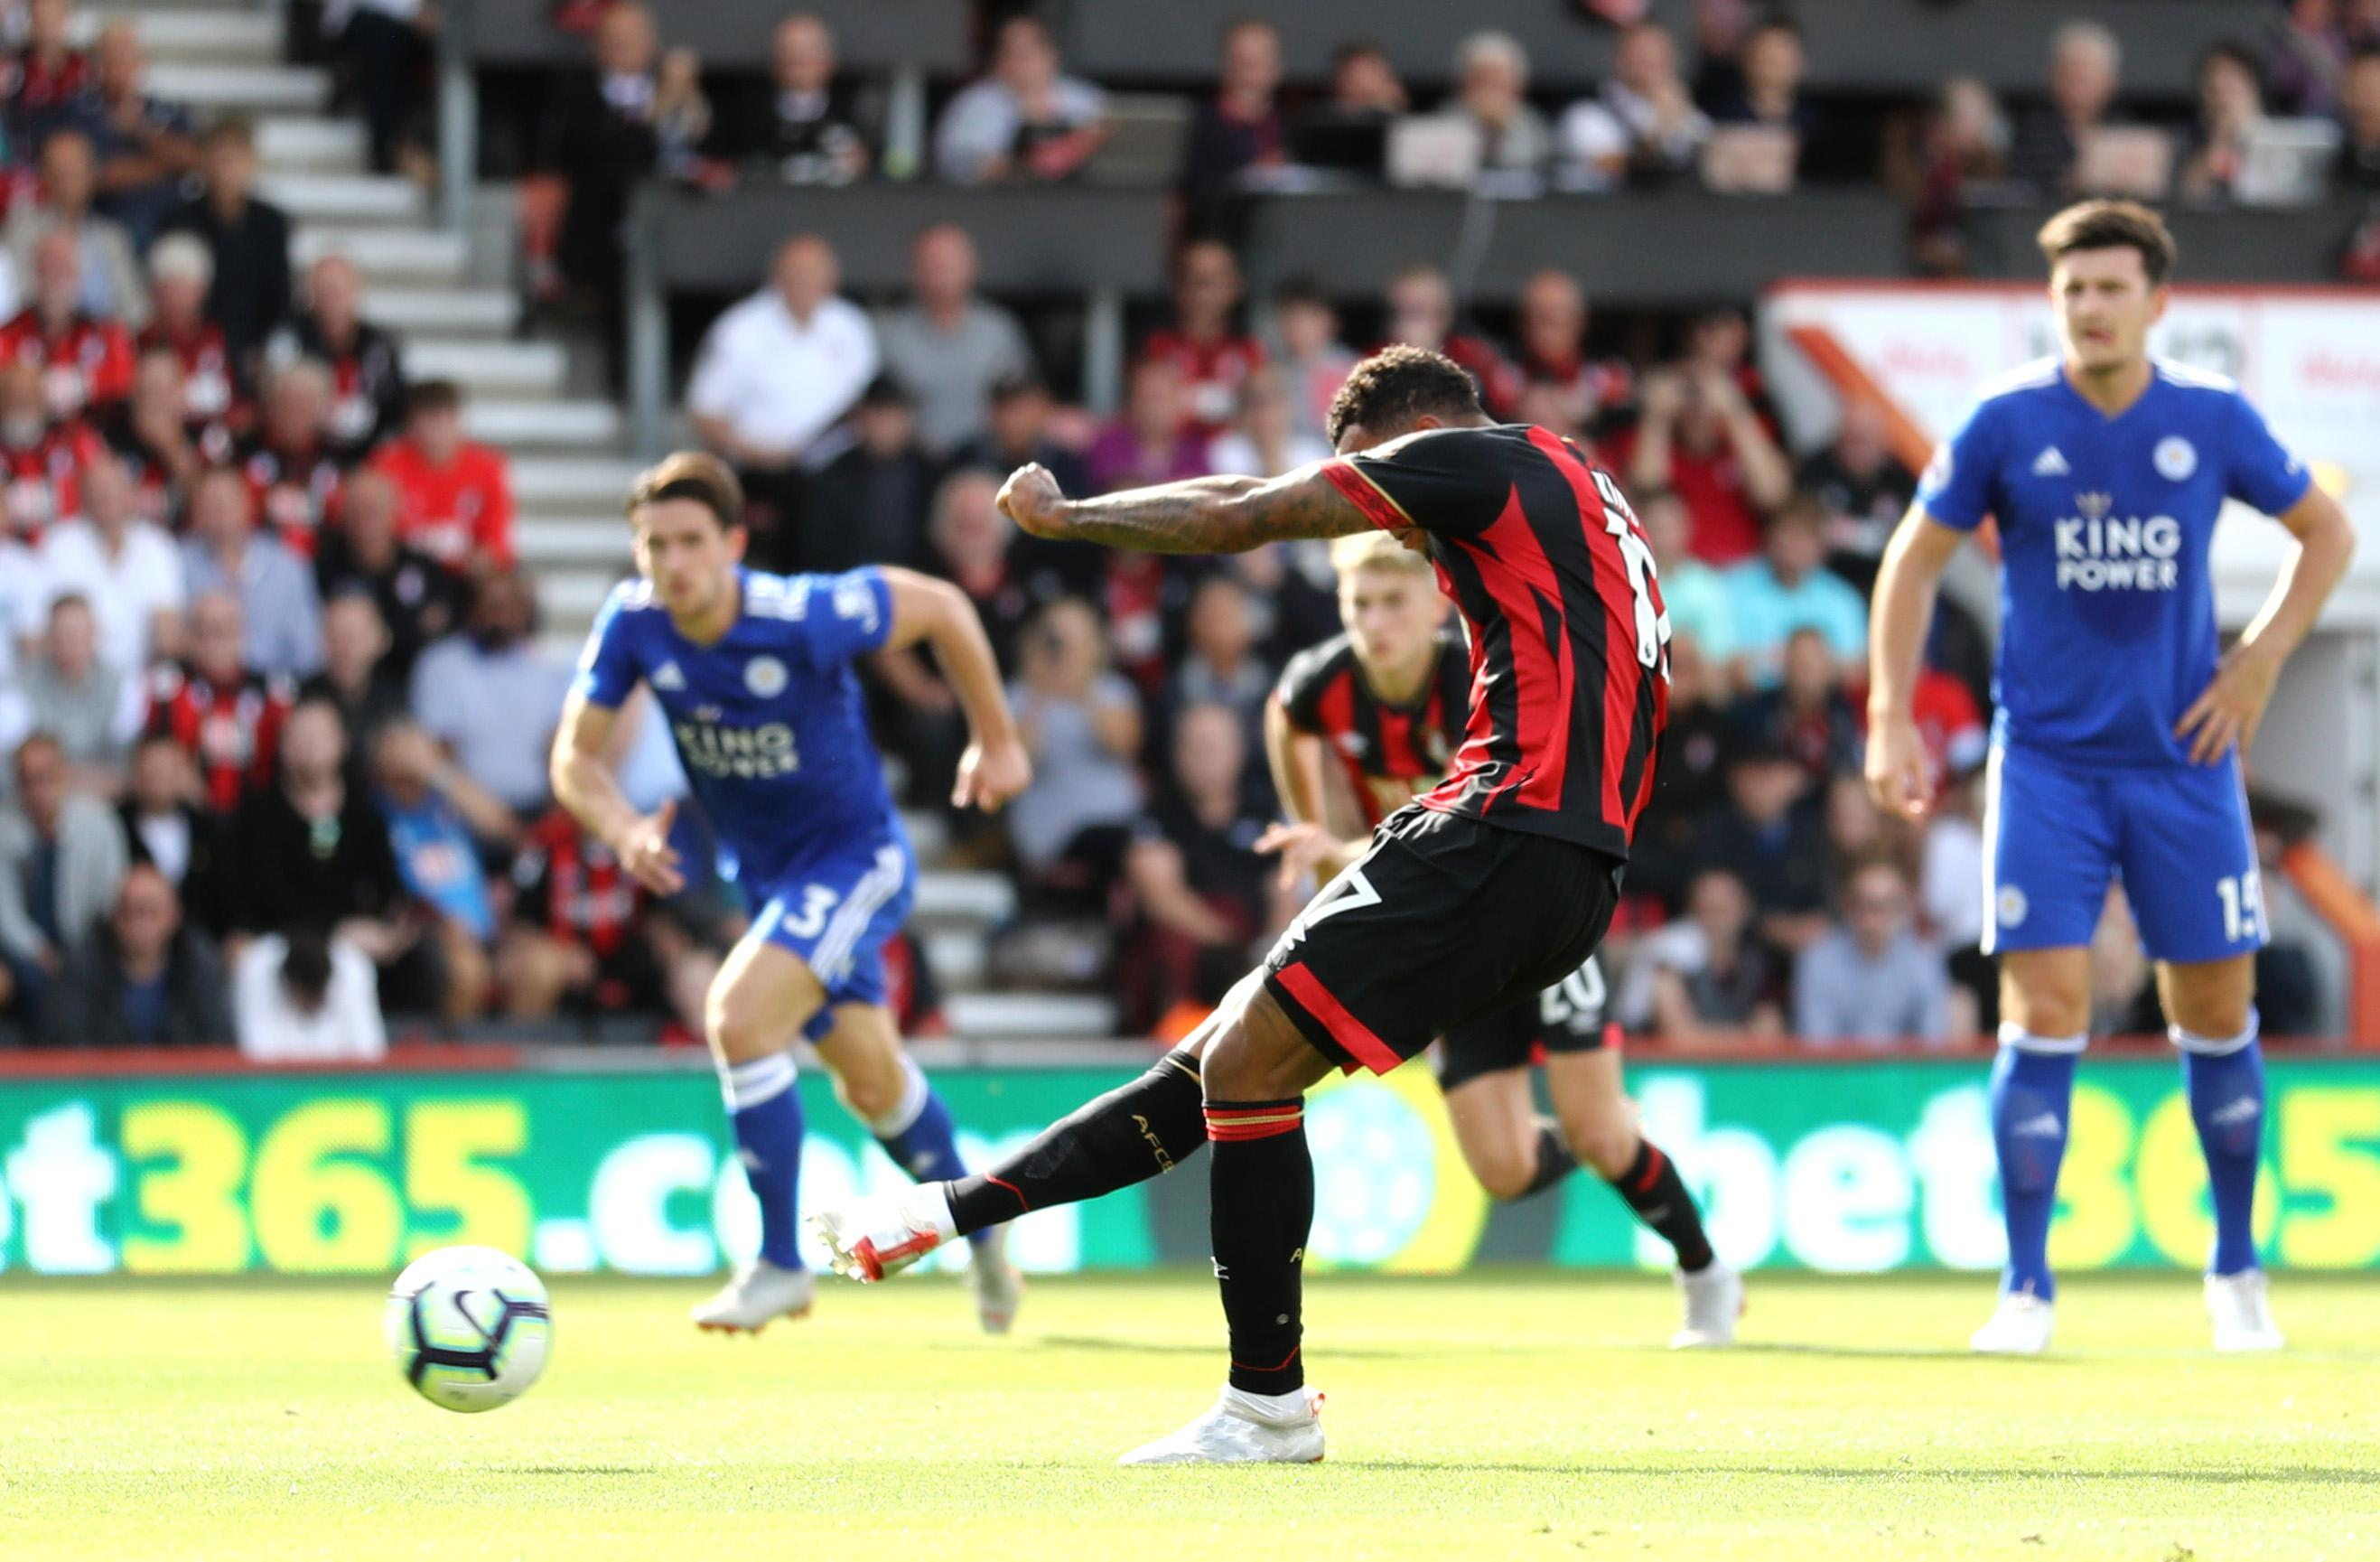 Bournemouth's penalty was seemingly the correct decision